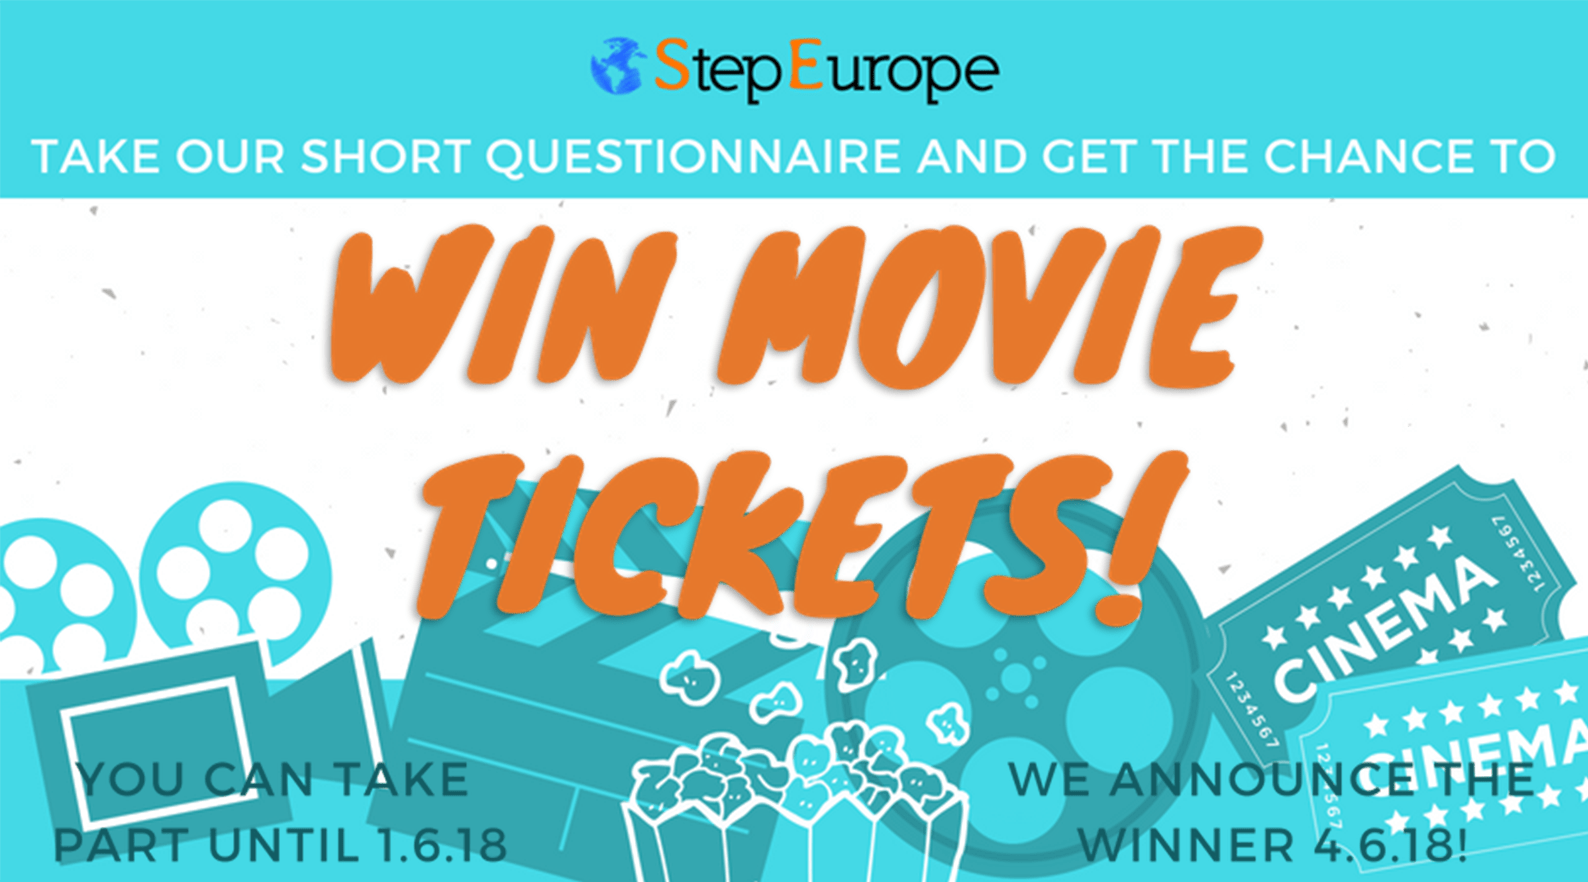 TAKE OUR SHORT QUESTIONNAIRE AND GET THE CHANCE TO WIN MOVIE TICKETS!